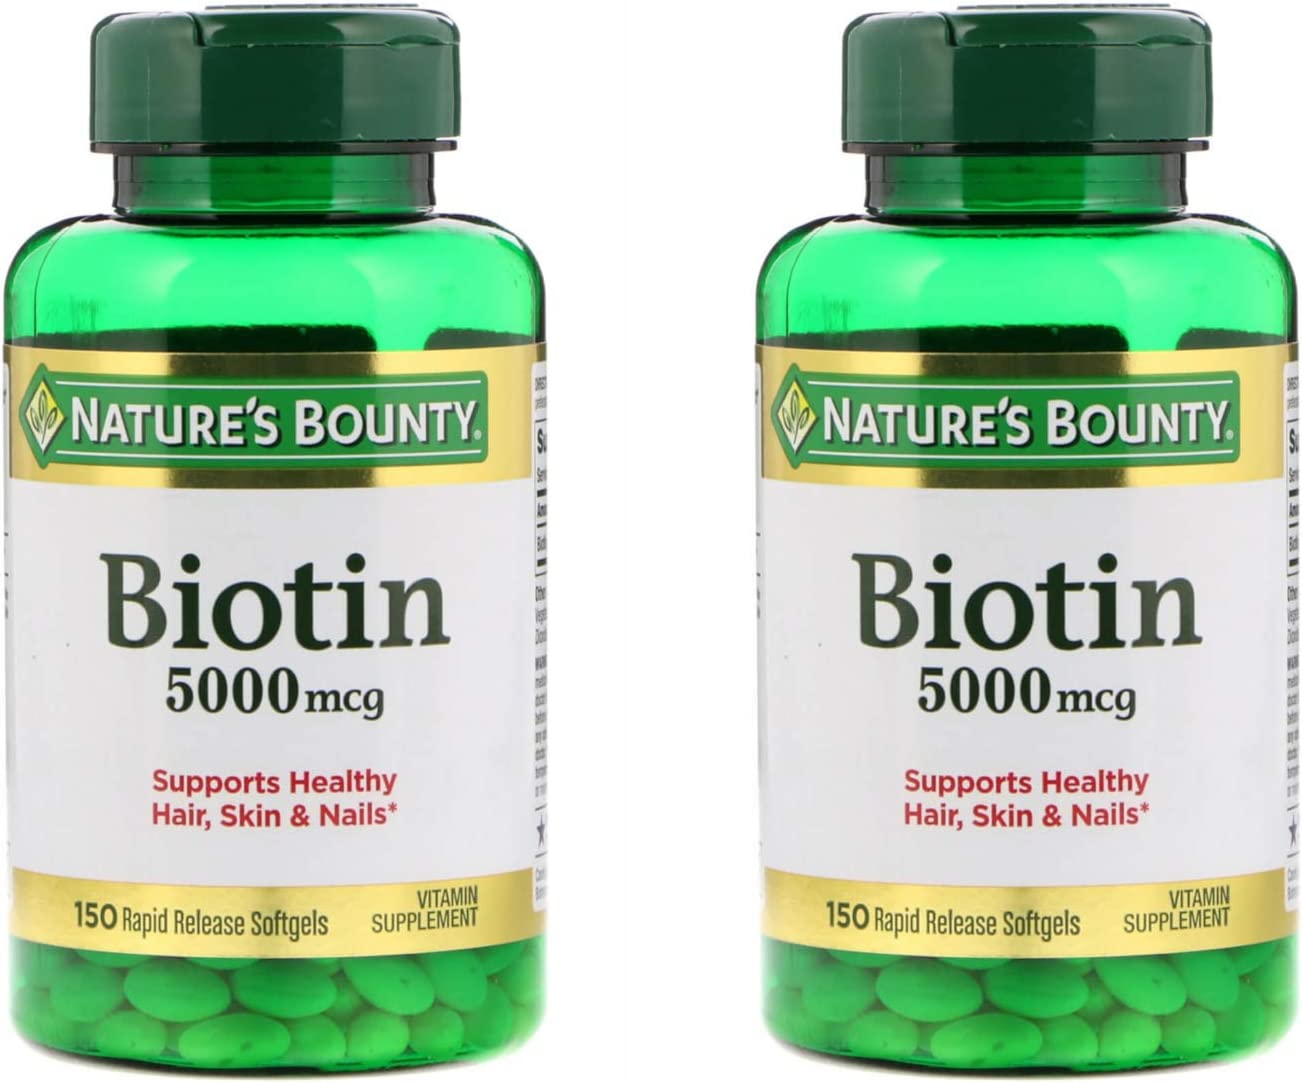 Nature's Bounty Biotin Softgels 5000 mcg Popular shop is the lowest price challenge 2 of 150 Pack low-pricing ea